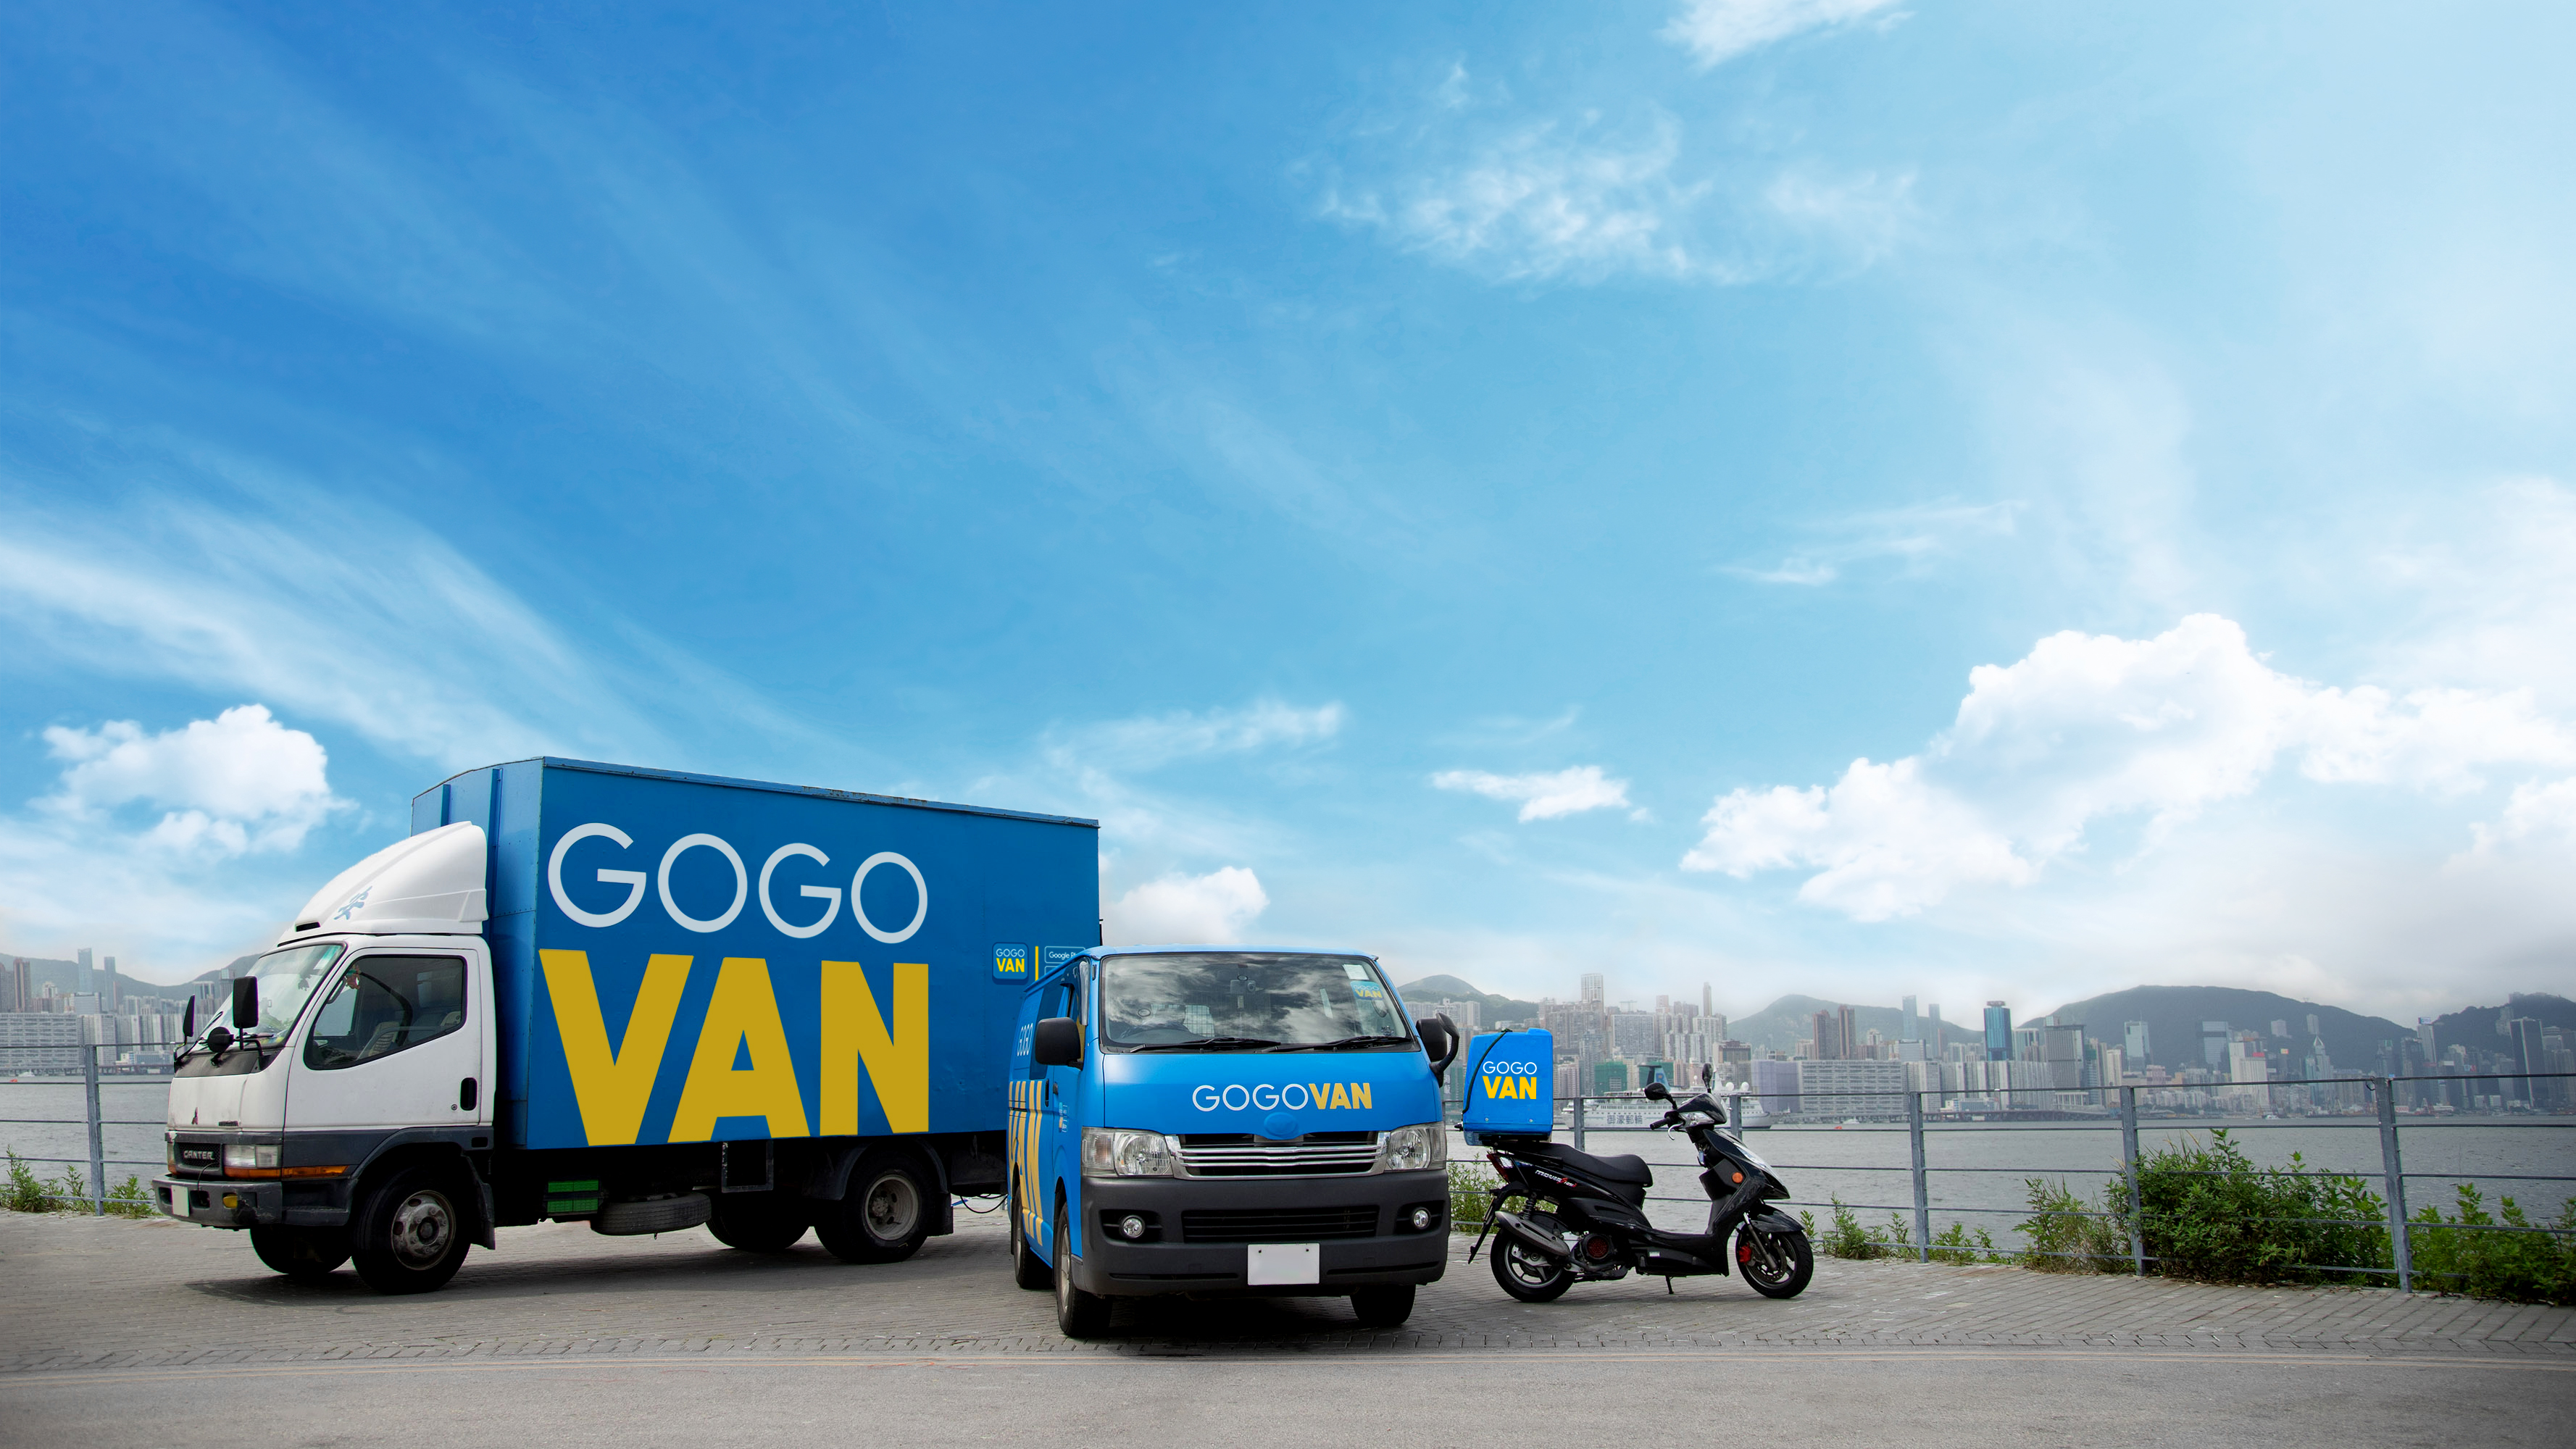 What Can You Move On A GOGOVAN?